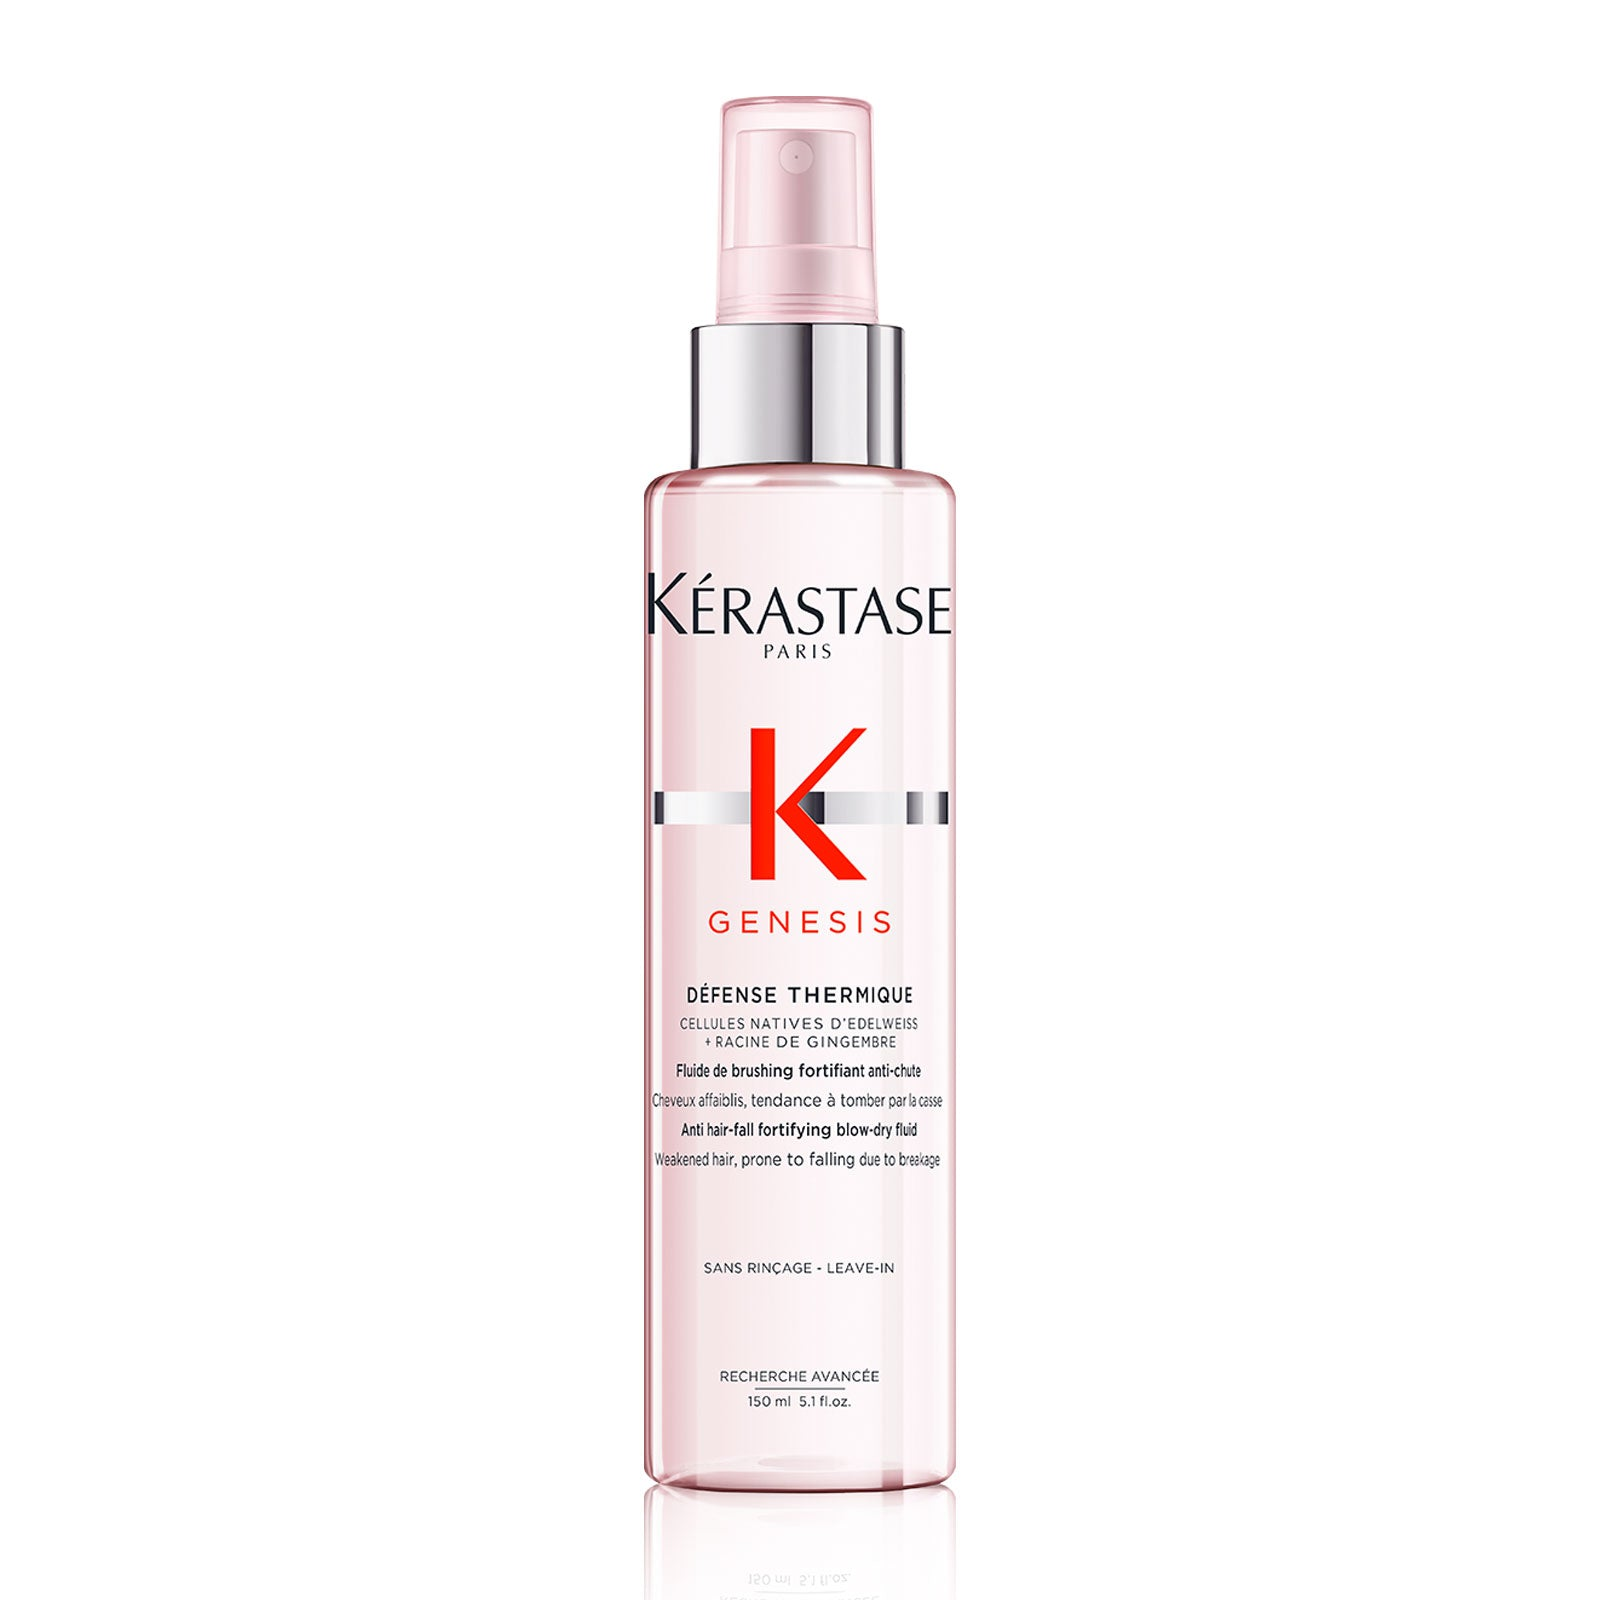 Kérastase Genesis Defense Thermique Heat Protector 150ml